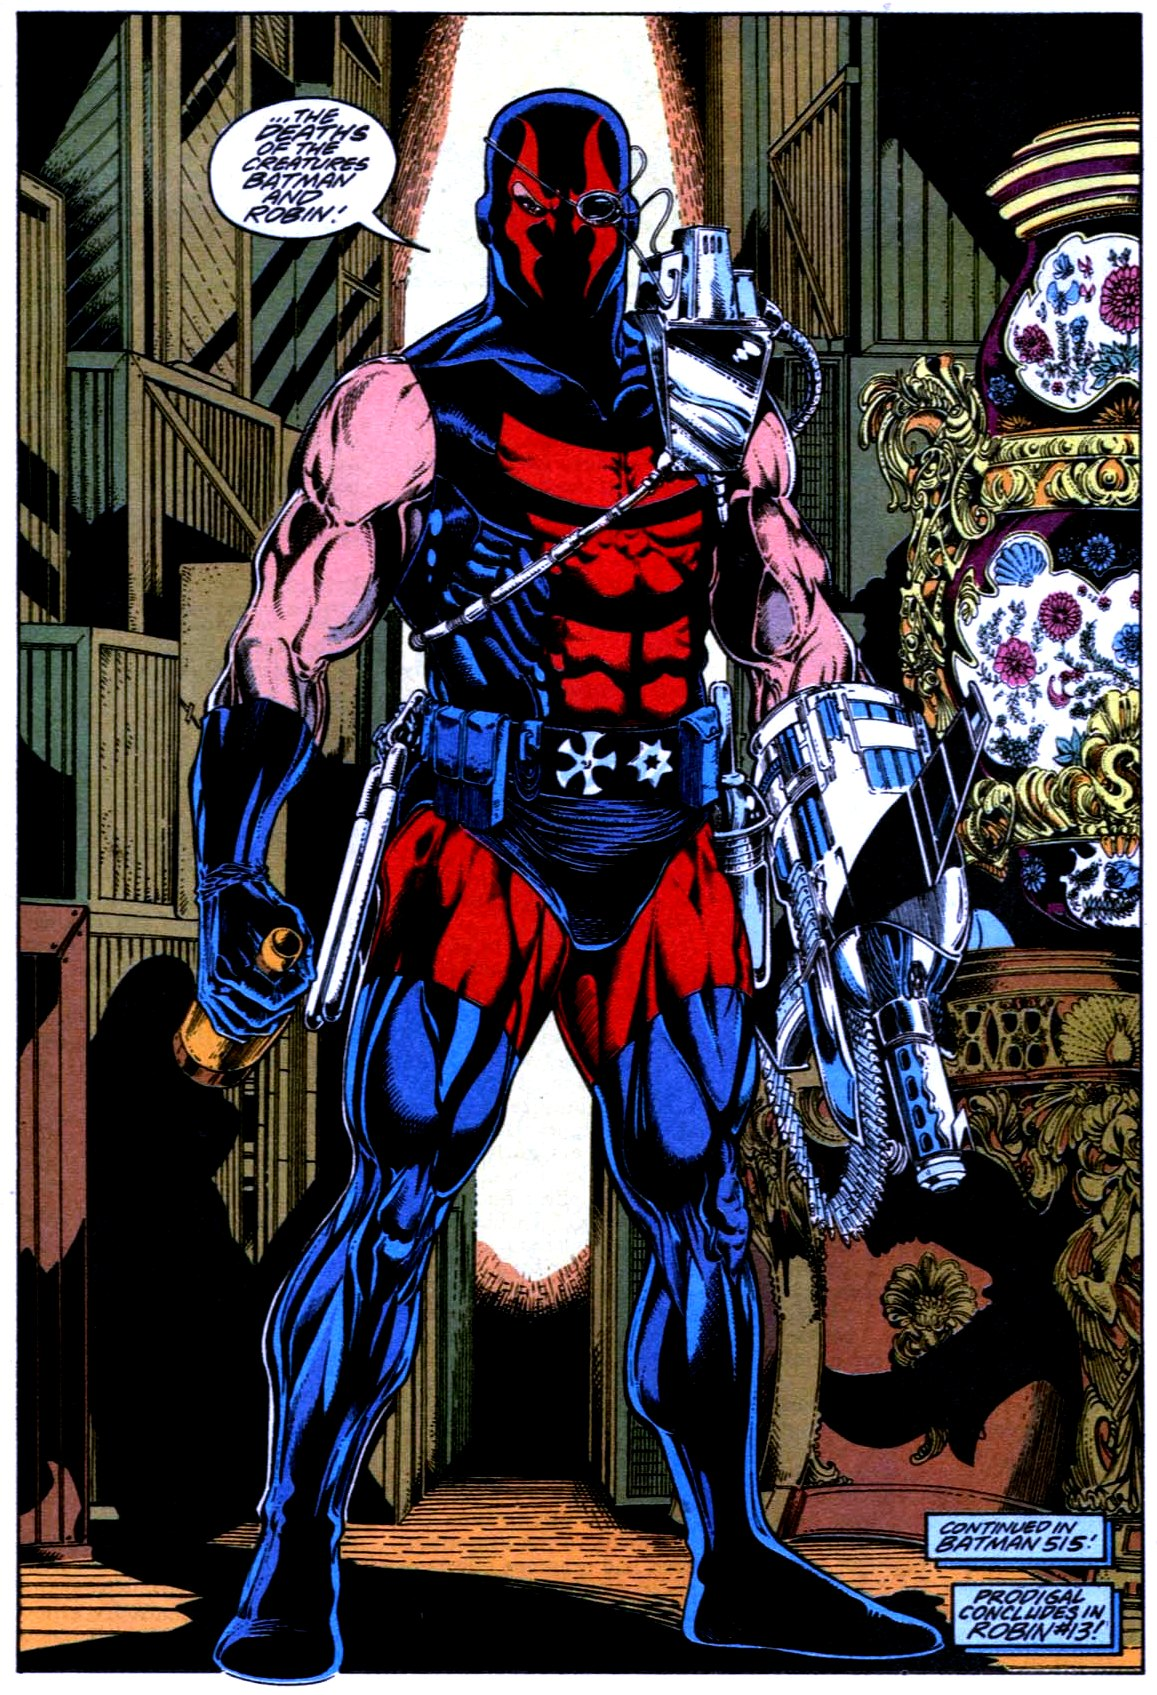 http://img1.wikia.nocookie.net/__cb20130609055738/marvel_dc/images/3/3a/KGBeast_0005.jpg